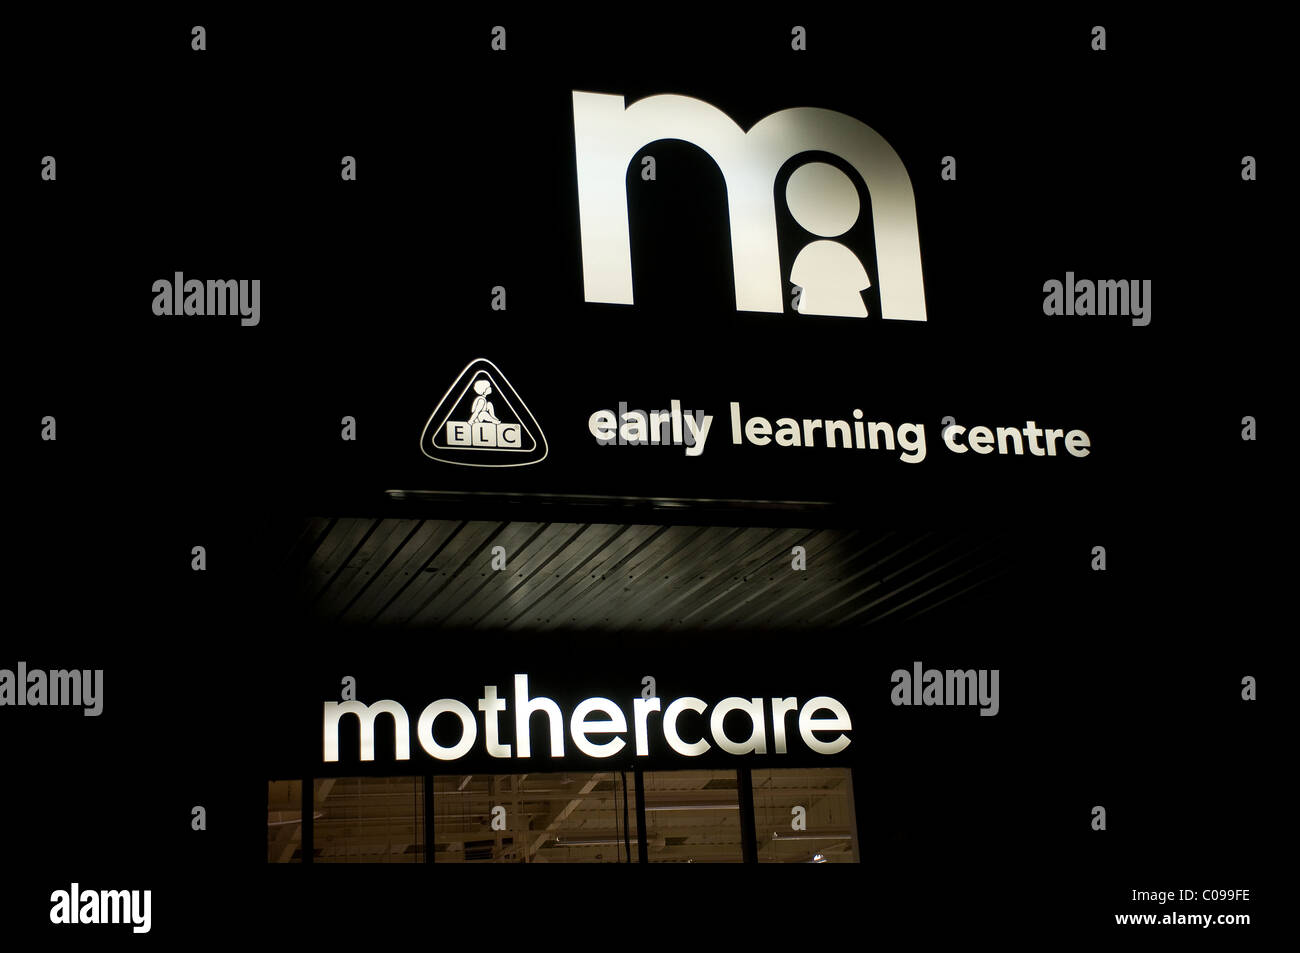 Mothercare and early learning centre in the black - Stock Image